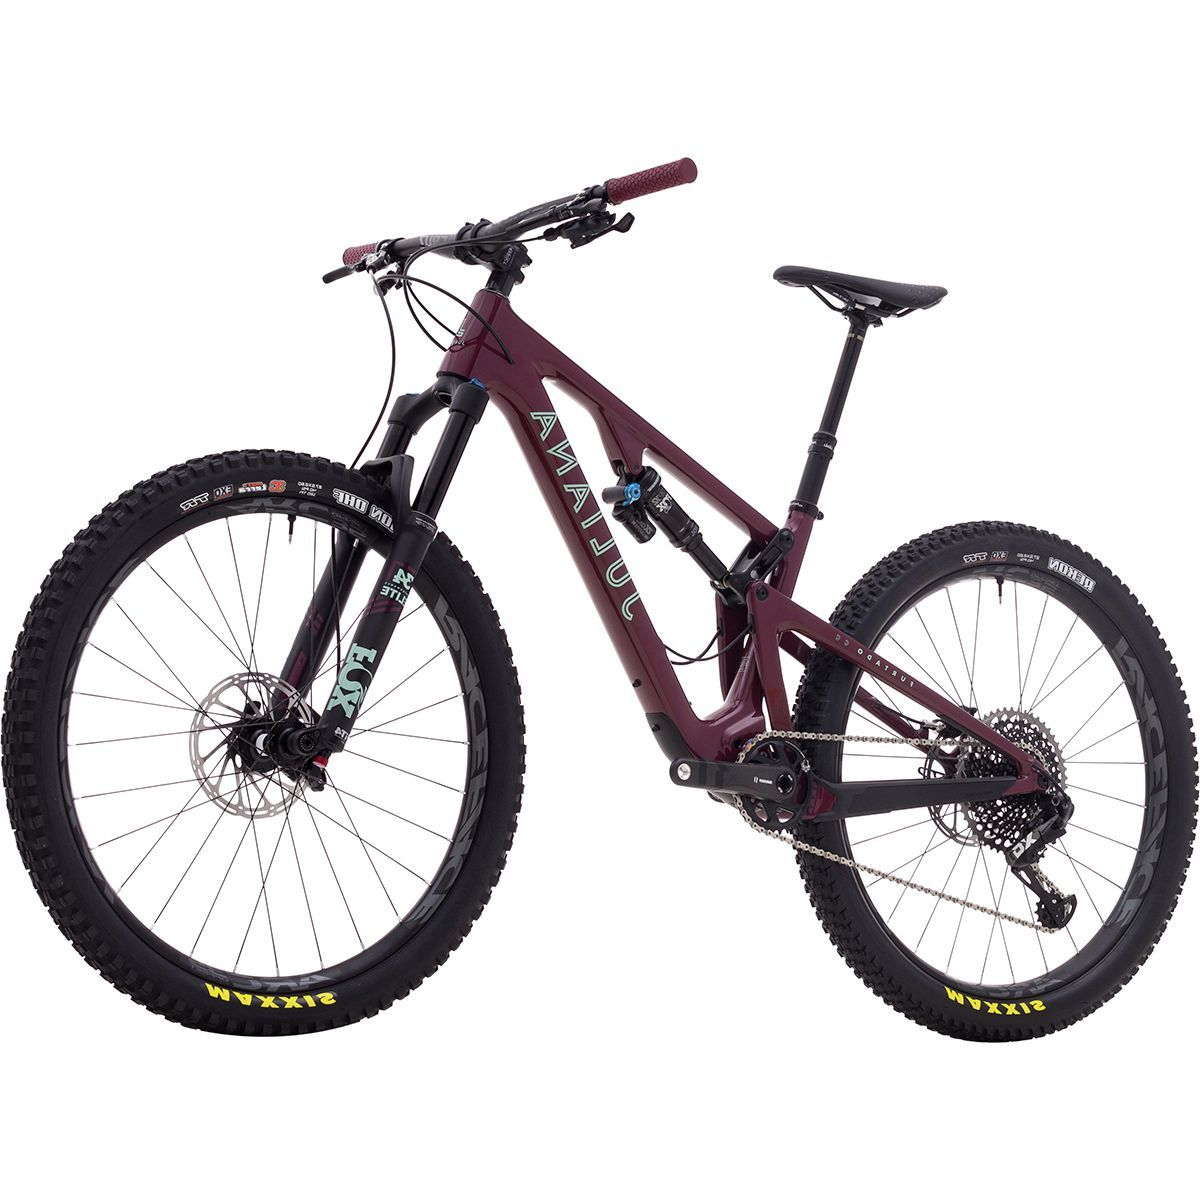 Juliana Furtado Carbon CC 27.5+ X01 Eagle Mountain Bike - Women's